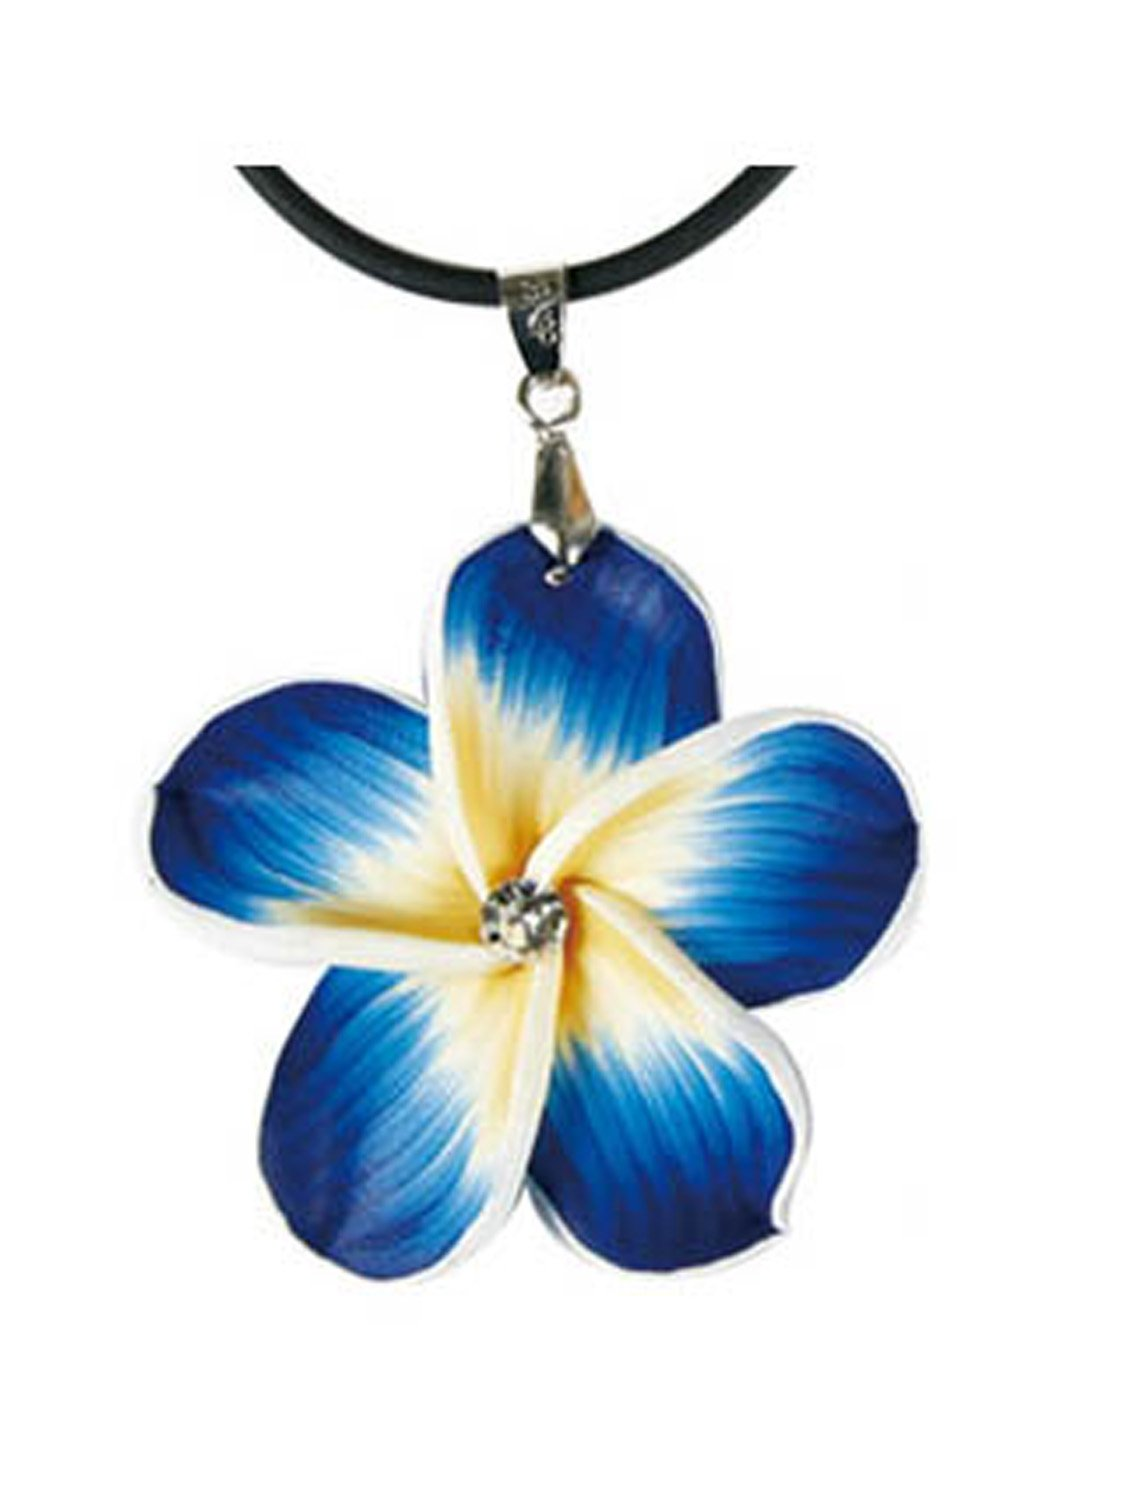 Amazon blue hawaiian flower necklace flower petal necklace amazon blue hawaiian flower necklace flower petal necklace toys games izmirmasajfo